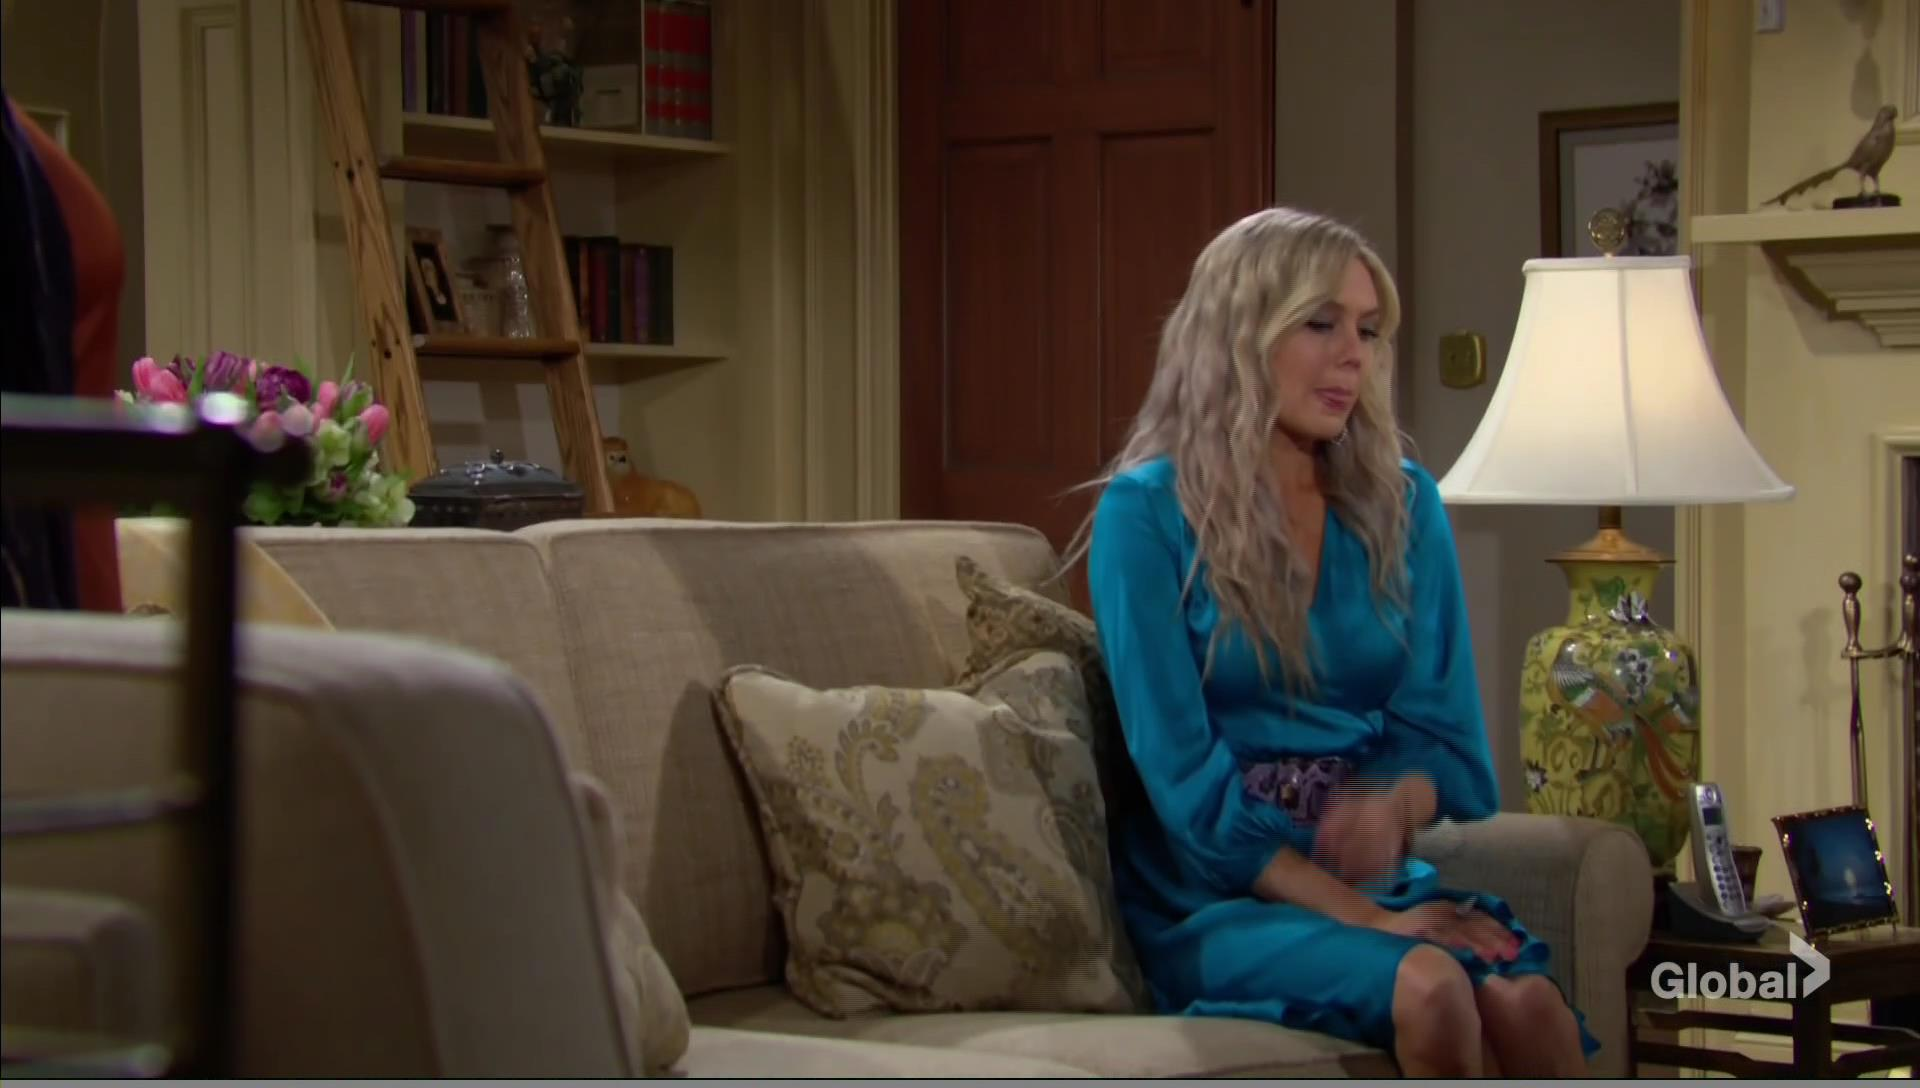 abby missing chance young and restless